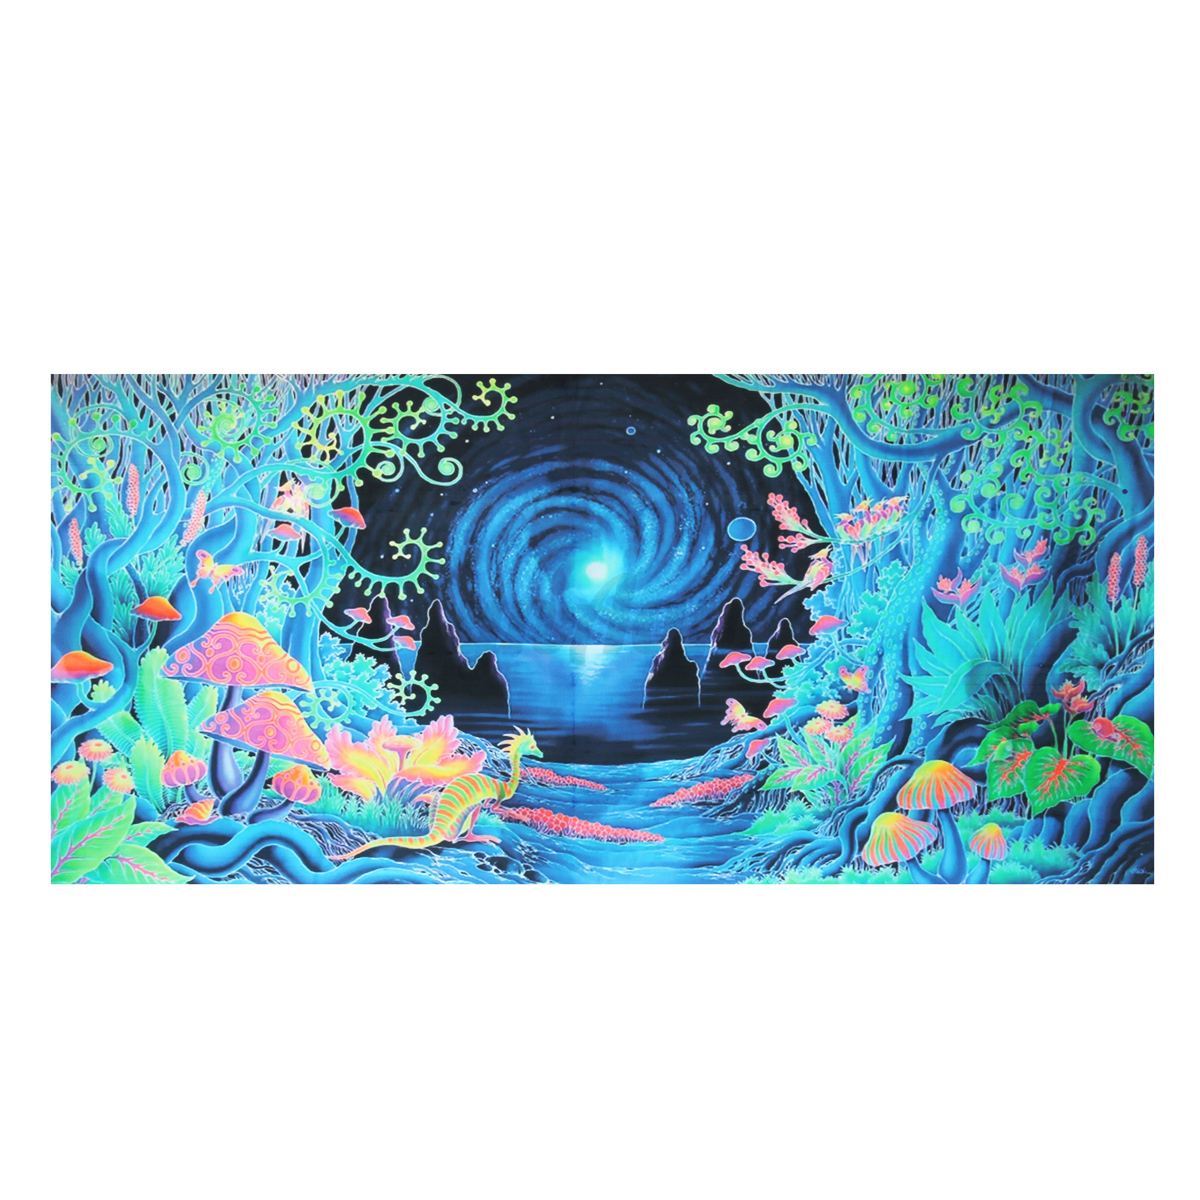 Wall Decor With Cloth : Style psychedelic art silk poster fabric cloth print